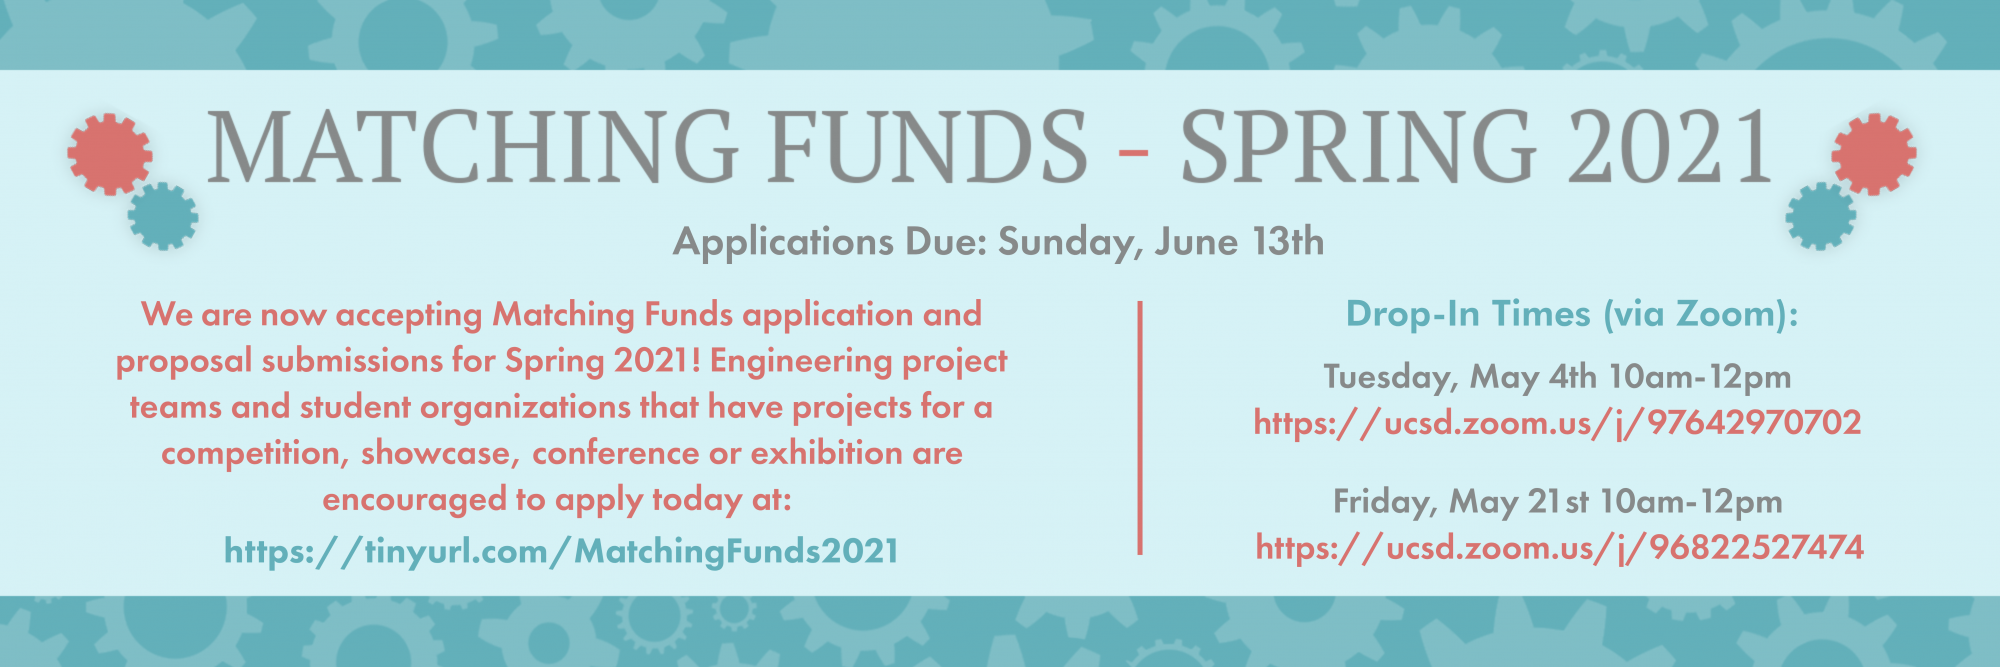 IDEA Spring 2021 Matching Funds